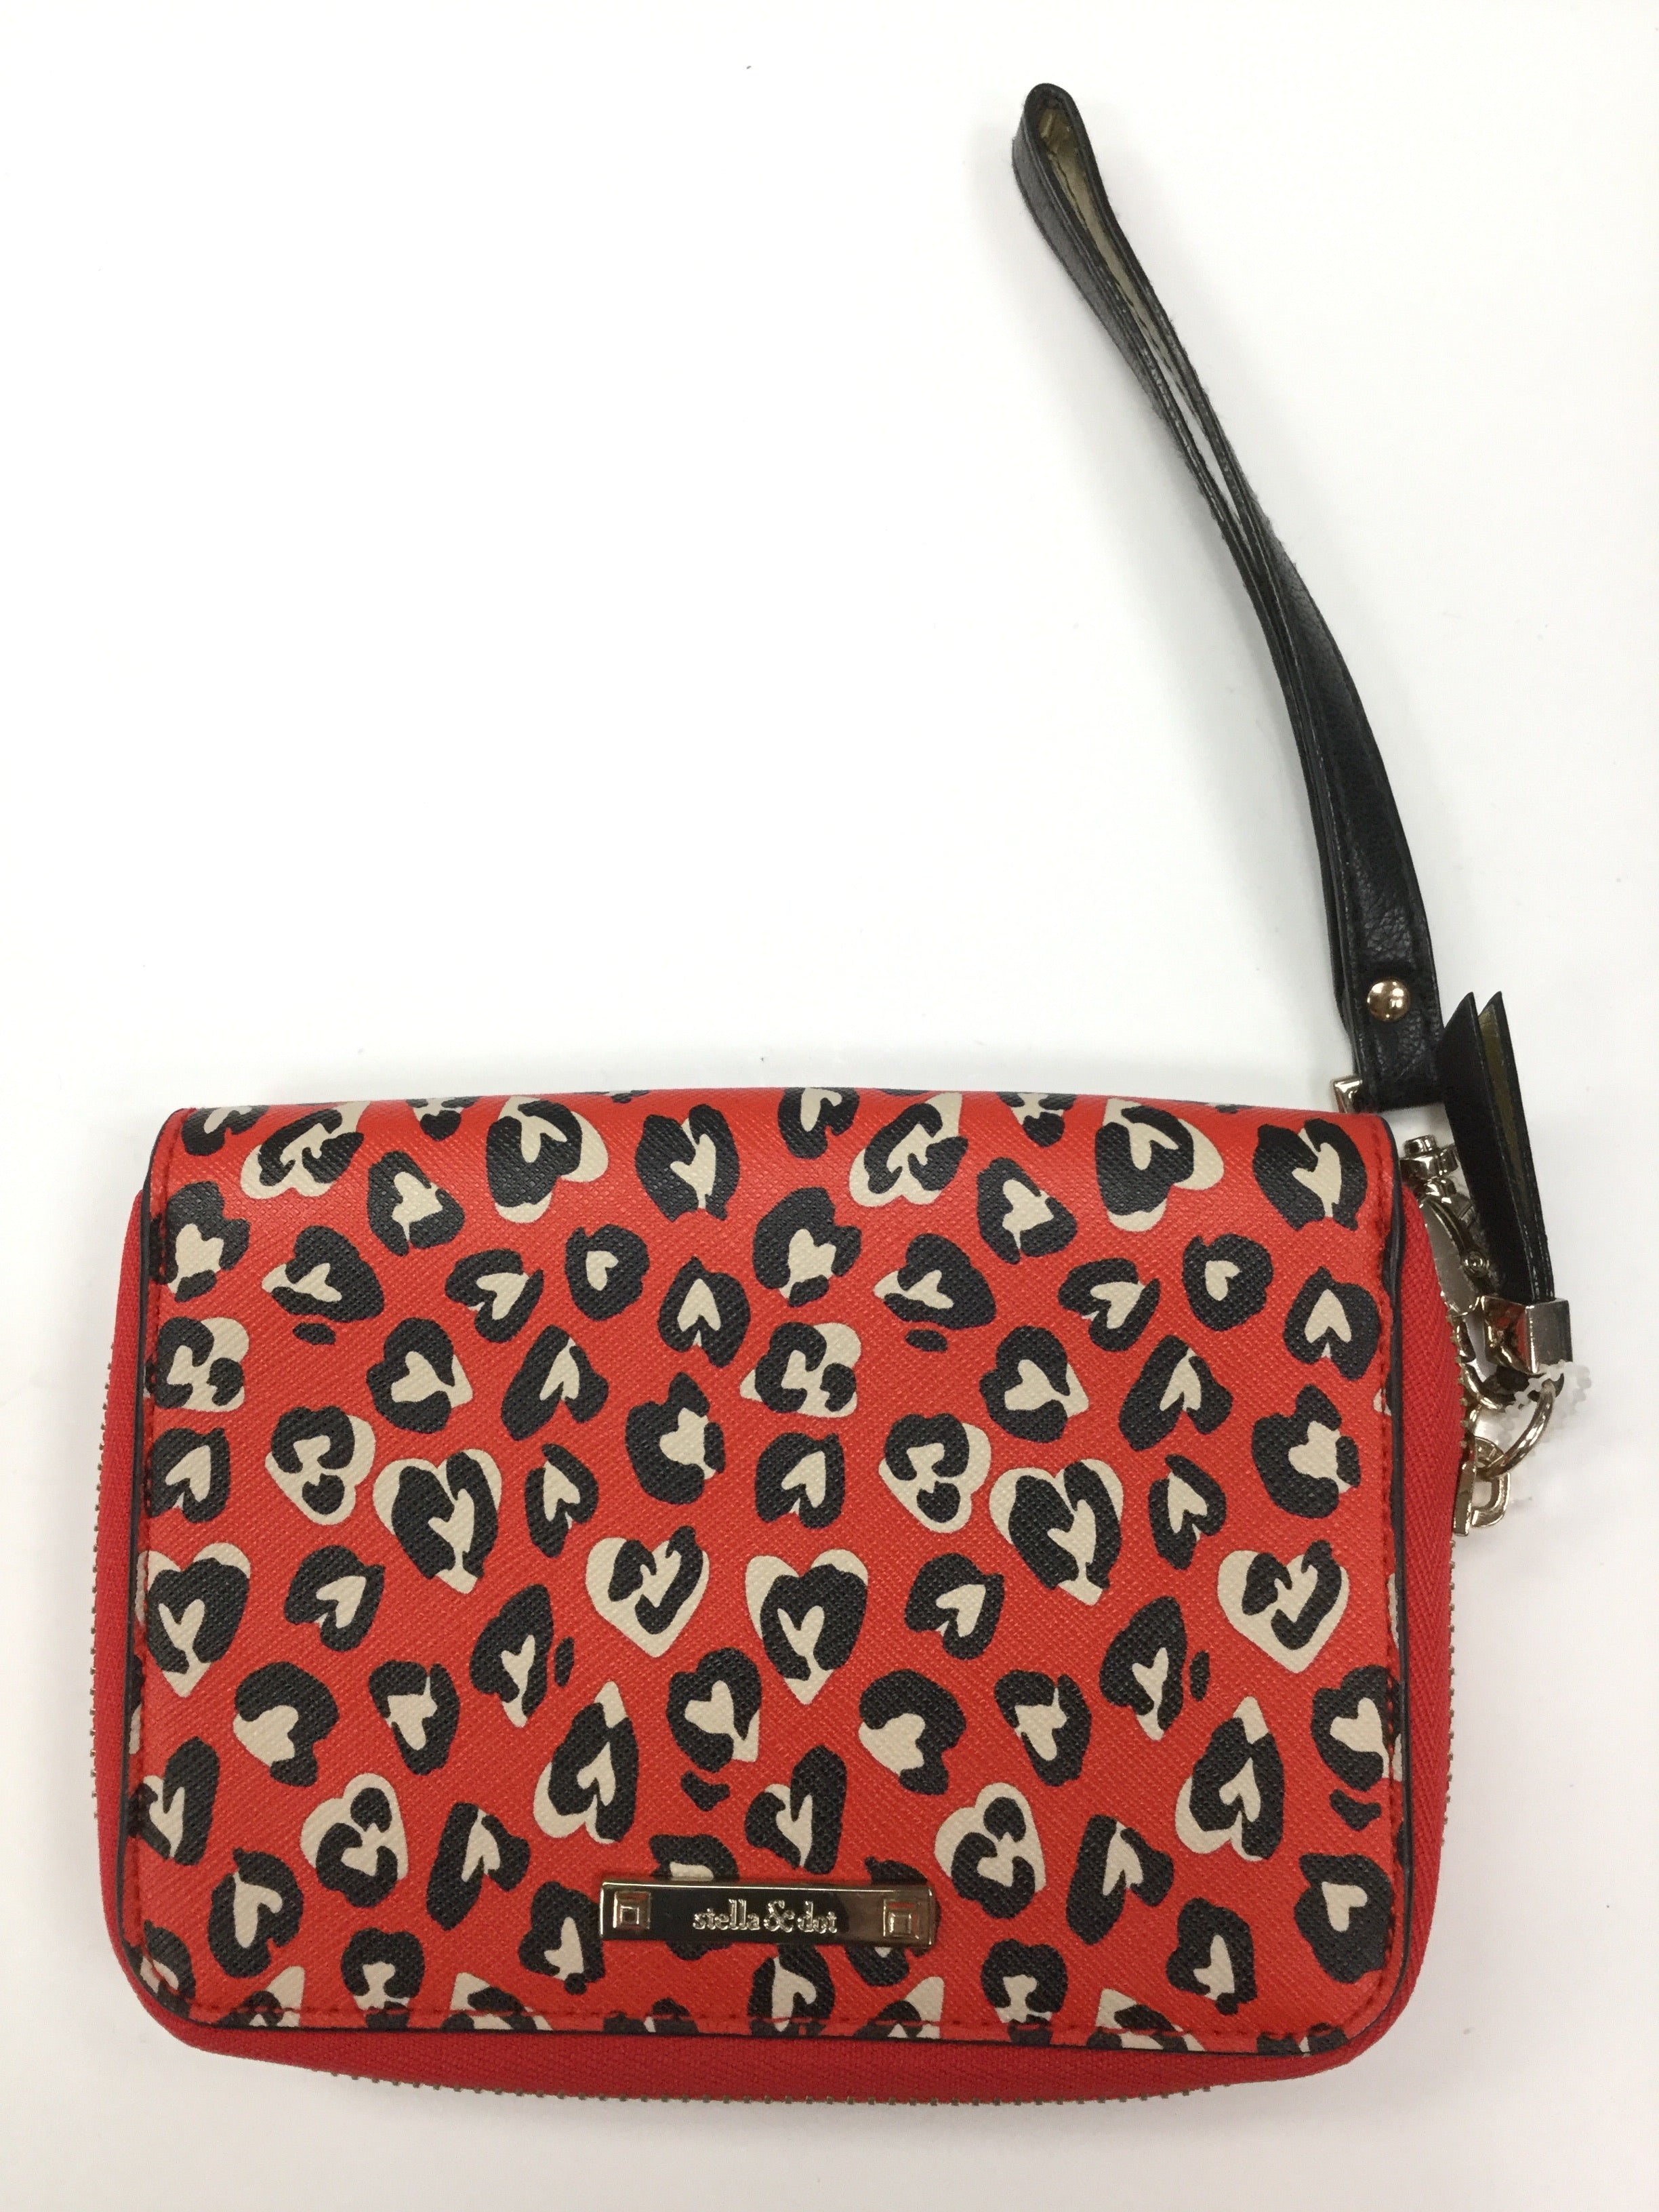 Primary Photo - BRAND: STELLA AND DOT <BR>STYLE: WRISTLET <BR>COLOR: HEART <BR>SIZE: MEDIUM <BR>SKU: 162-16299-25306<BR>RED, BLACK, BEIGE HEART PRINT